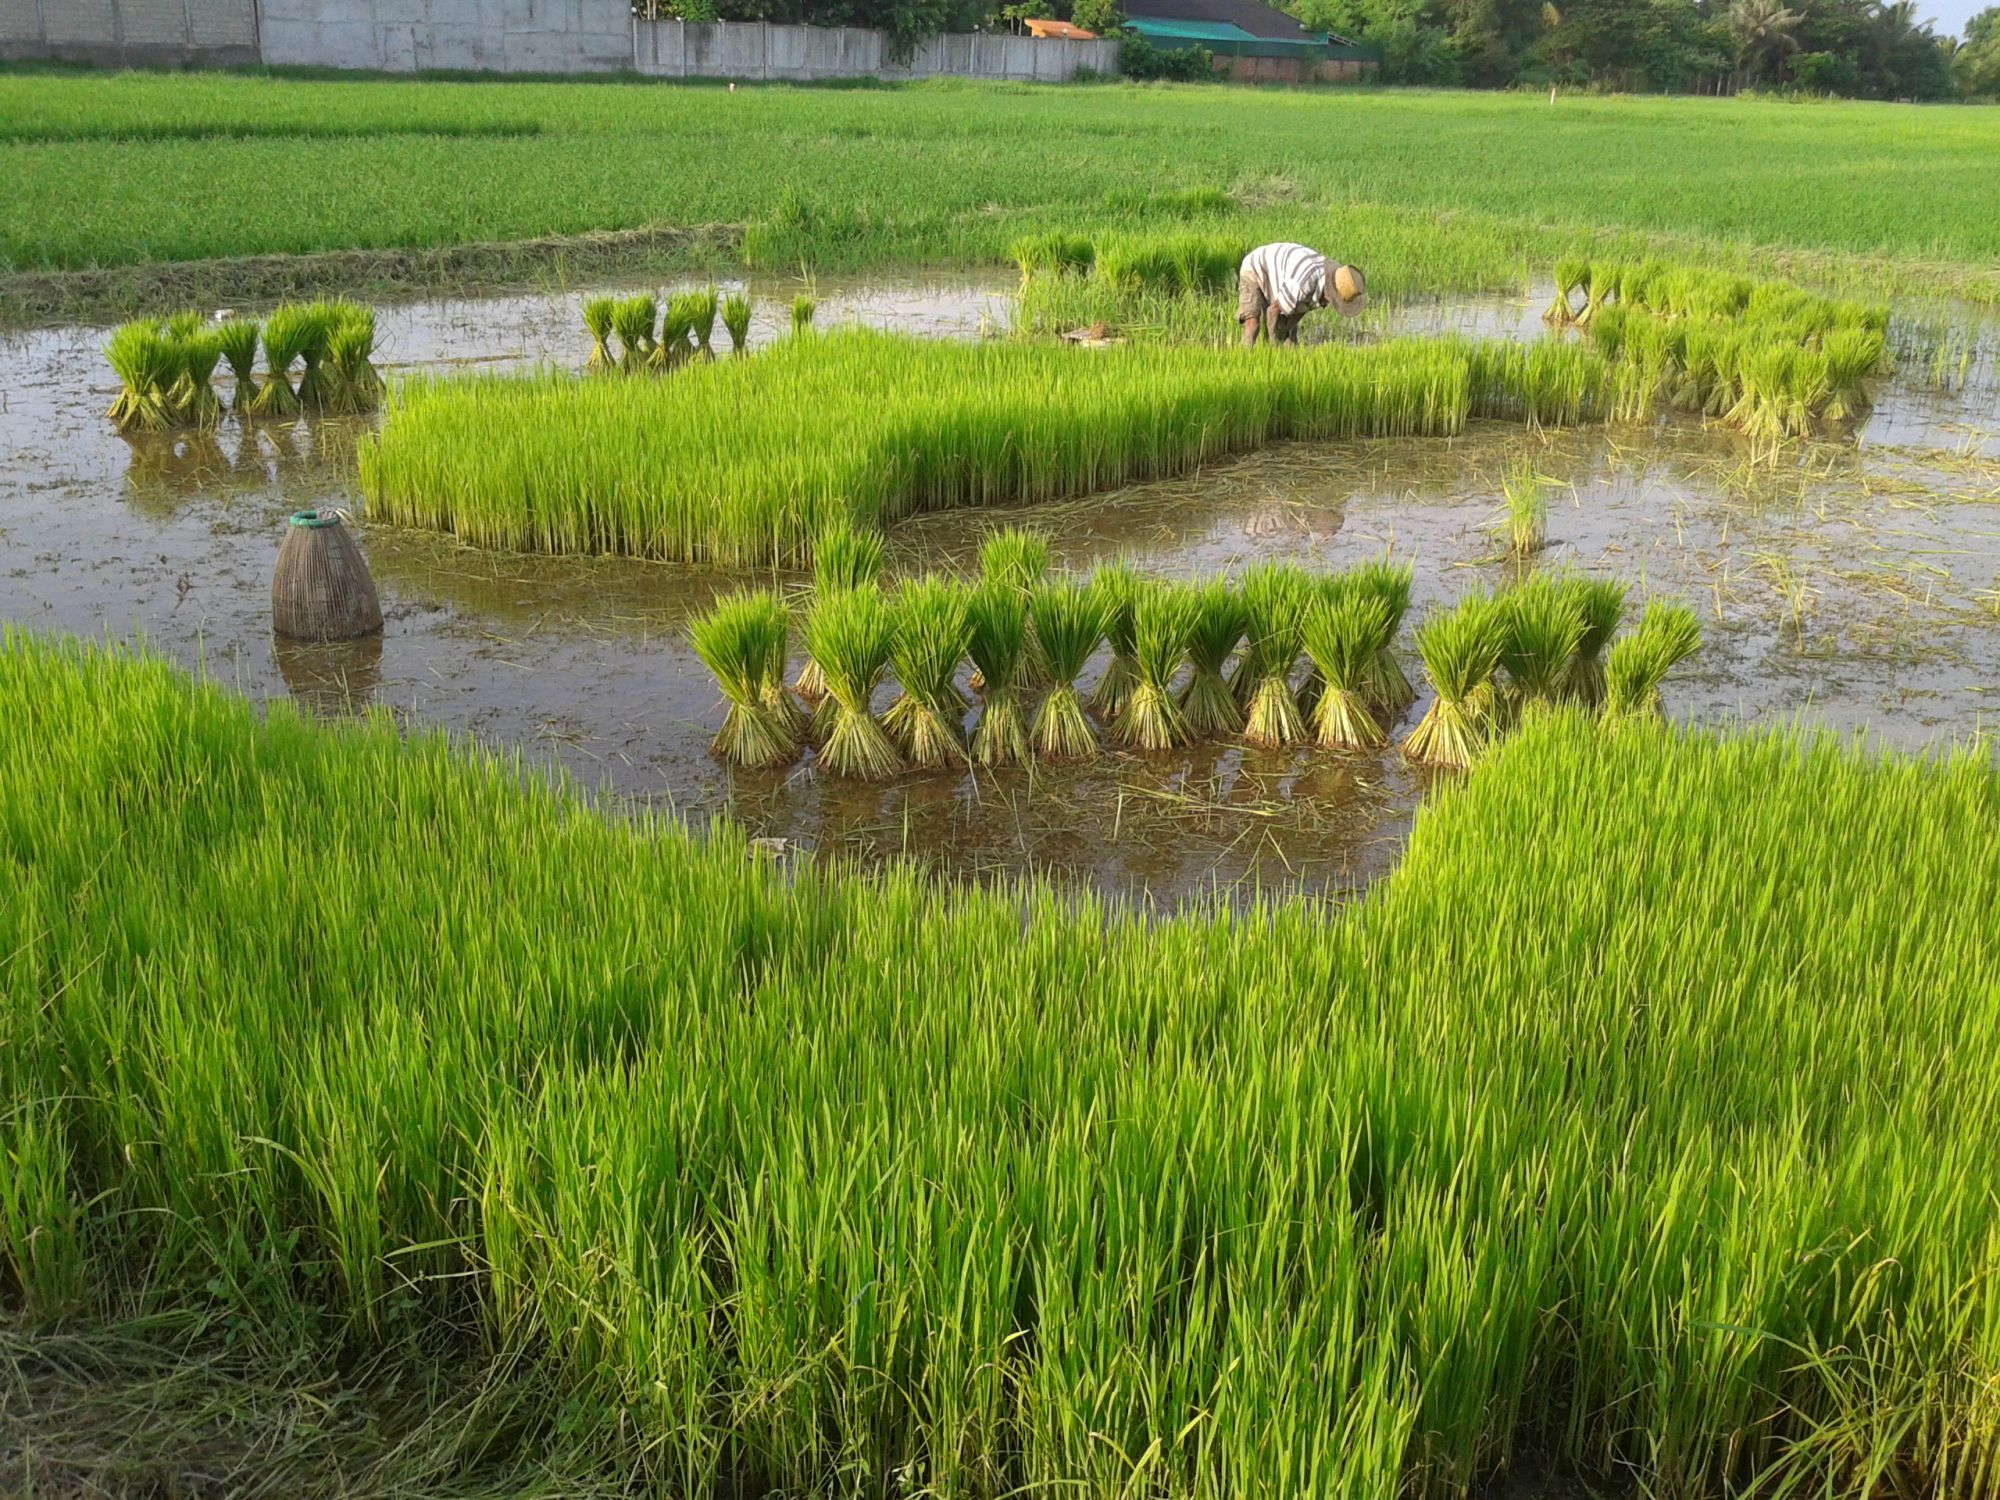 Addressing the wetland and agriculture conundrum | Water ...